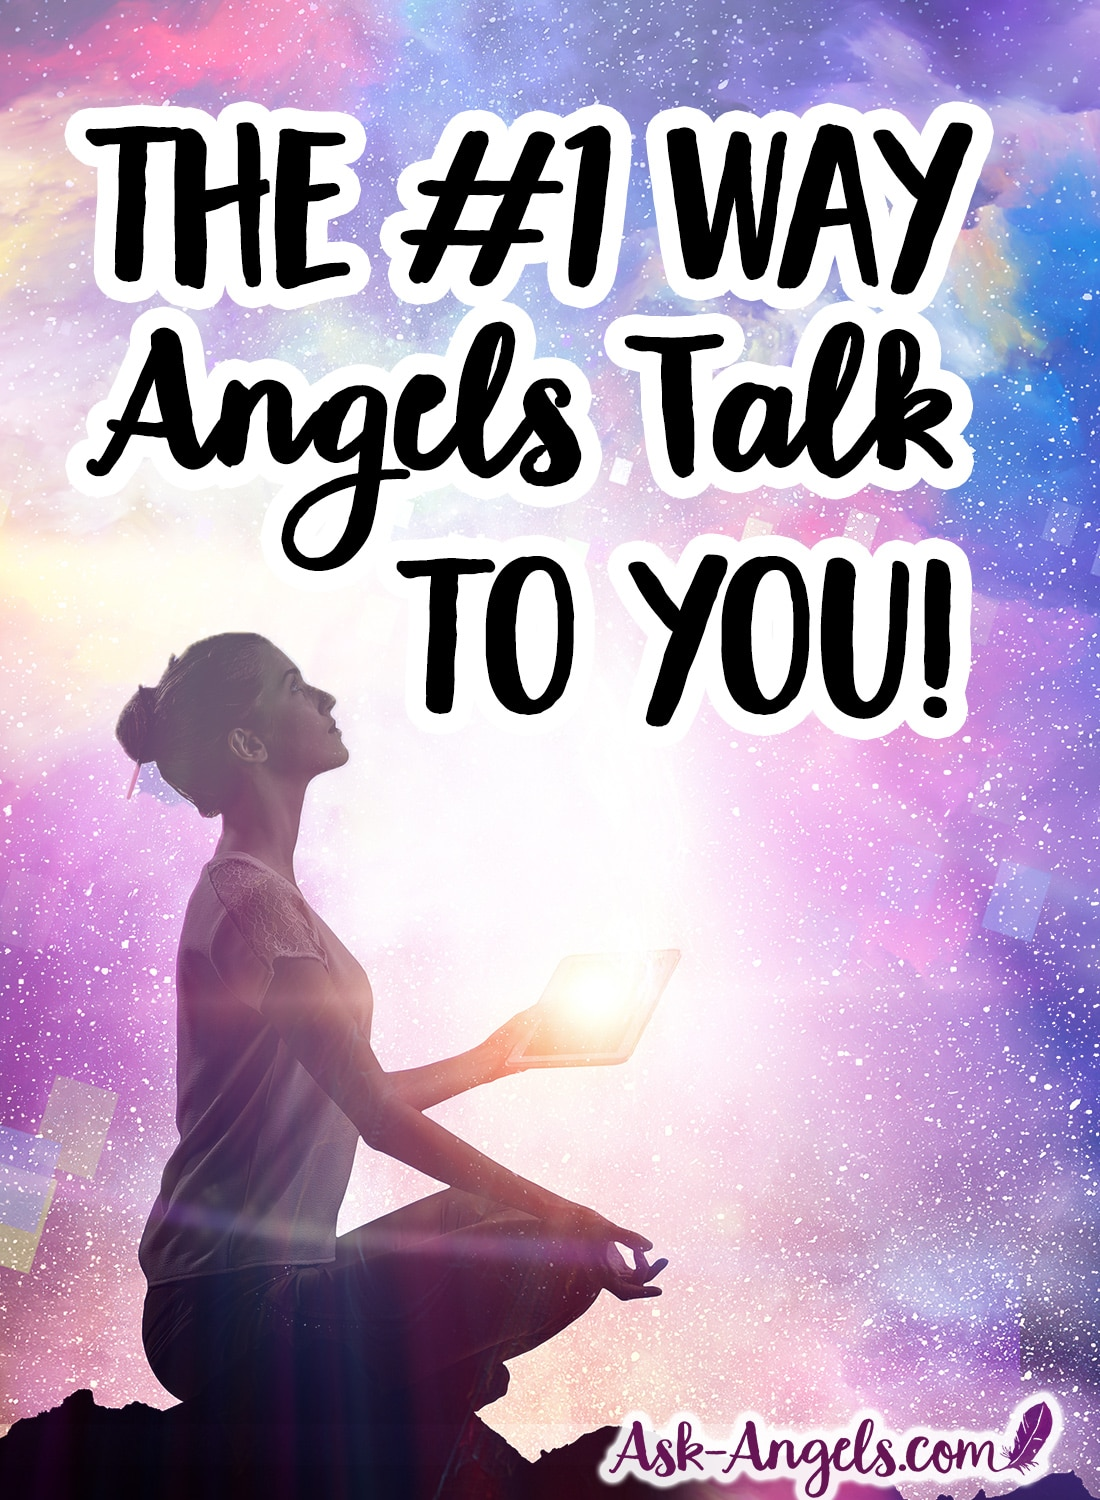 Learn the #1 Way Angels Talk to you! Receive Angel Messages now!